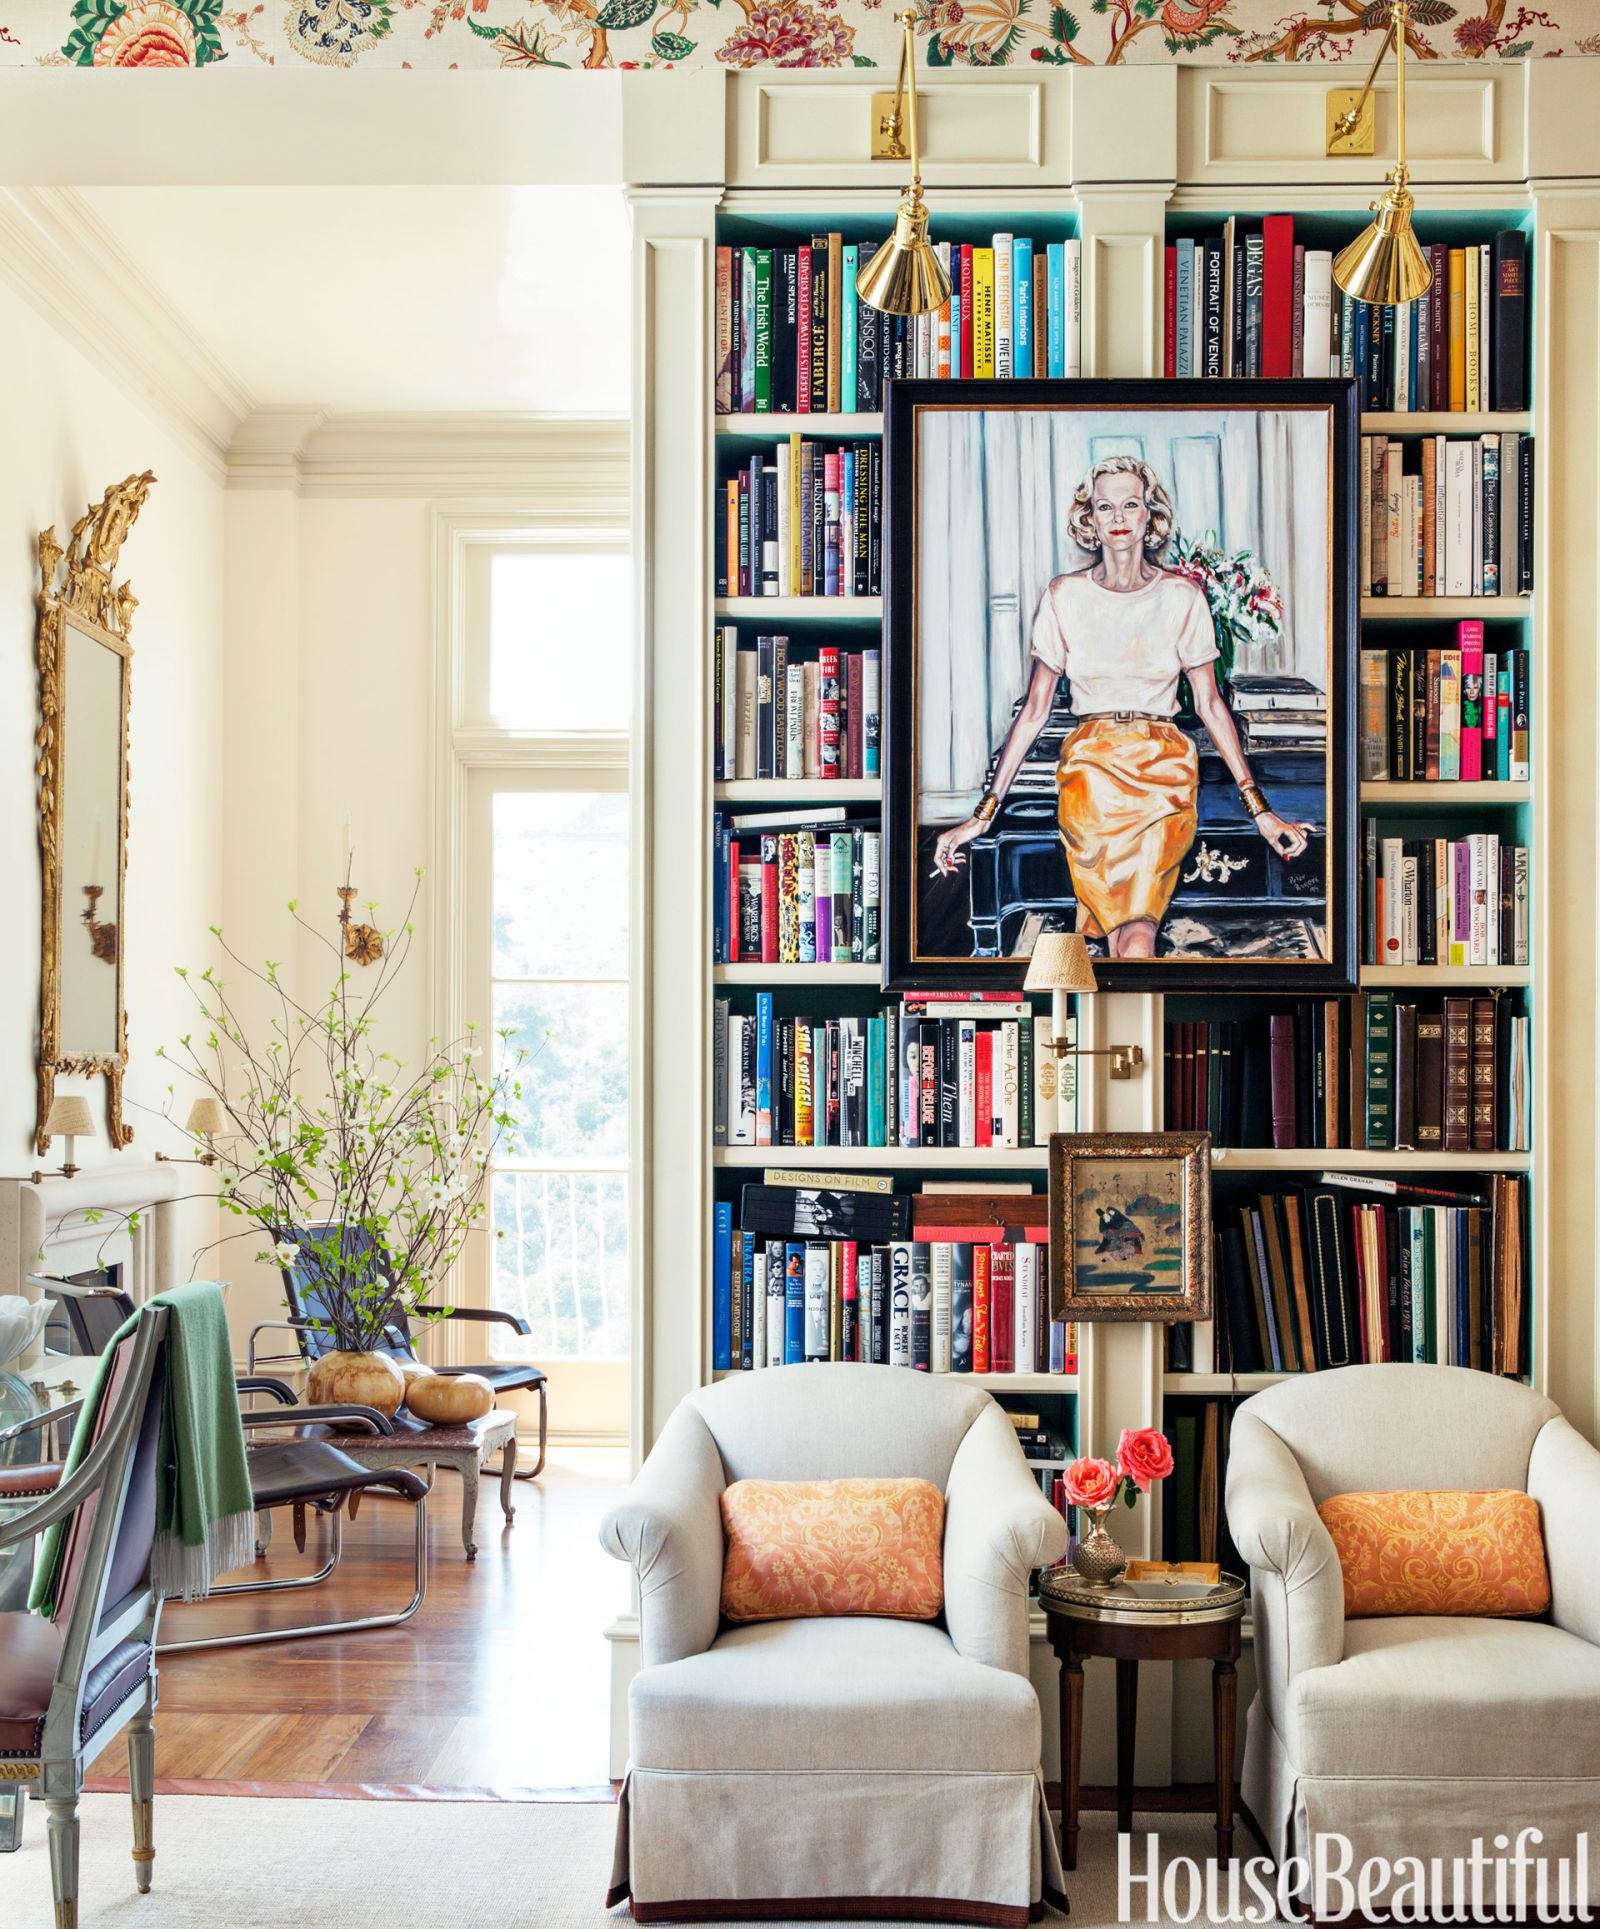 Awesome Bookshelf Portrait